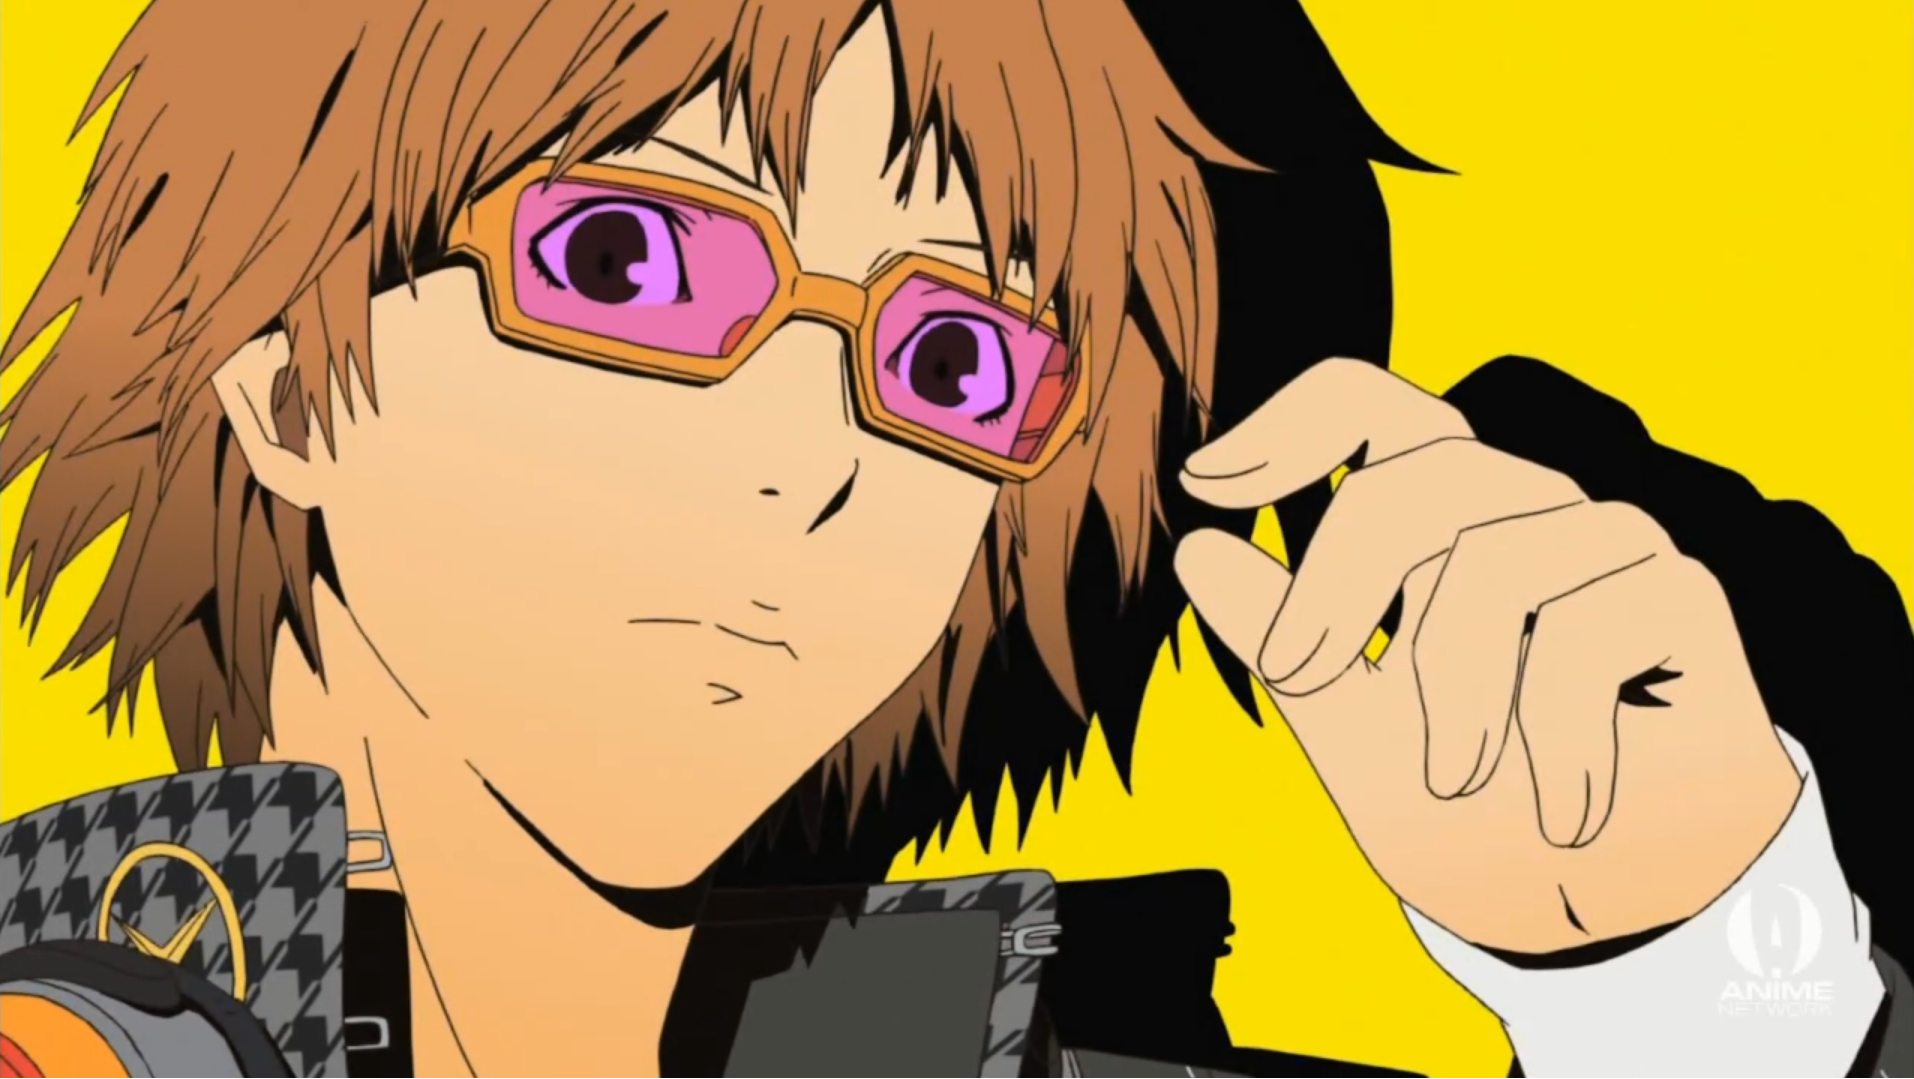 Dating everyone persona 4 animation